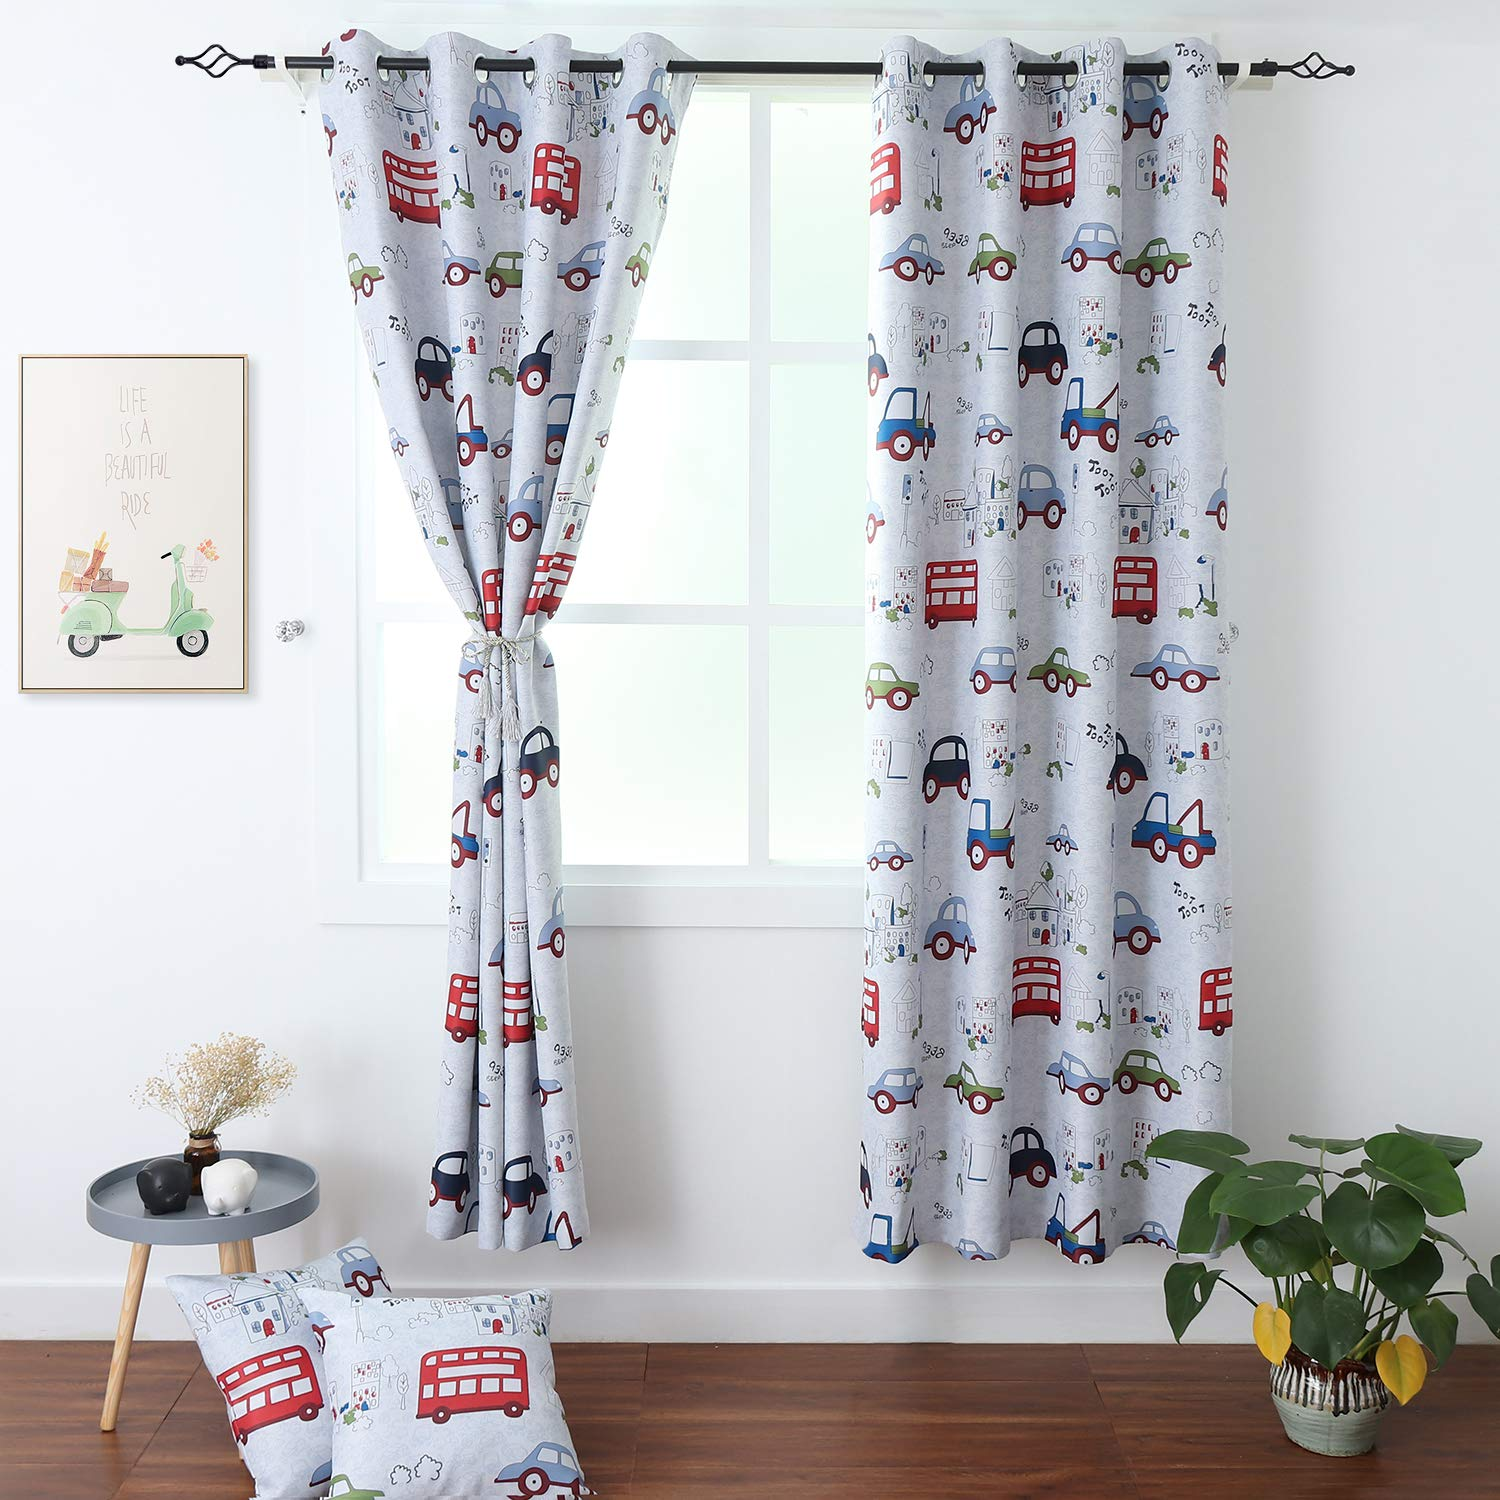 BGment Kids Blackout Curtains - Grommet Thermal Insulated Room Darkening Printed Car Bus Patterns Nursery and Kids Bedroom Curtains, Set of 2 Curtain Panels (52 x 84 Inch, Greyish White) by BGment